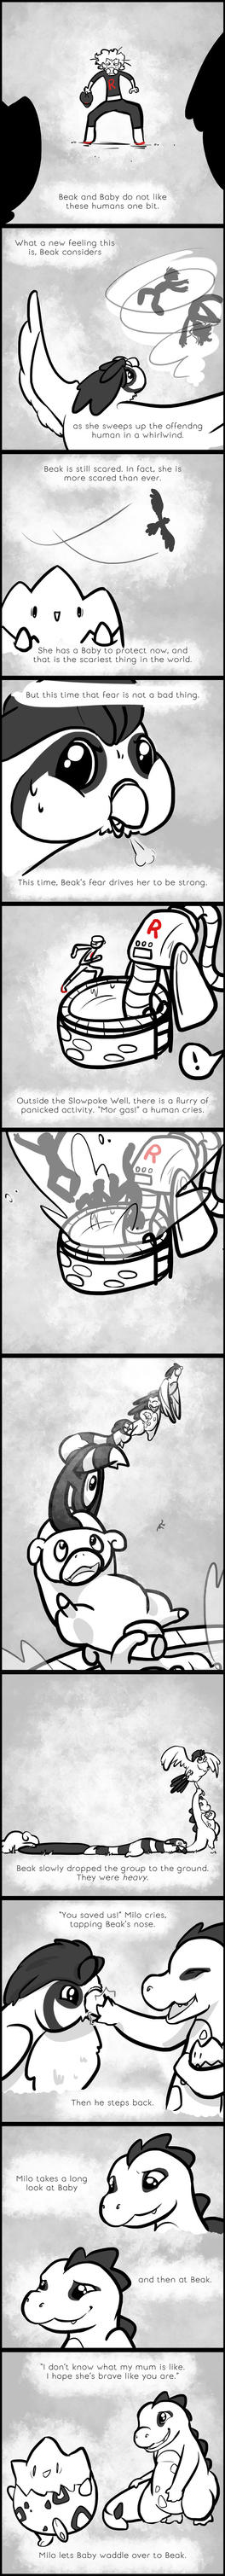 Courage - Event 05: Something to Protect (2) by Lost-Paperclip